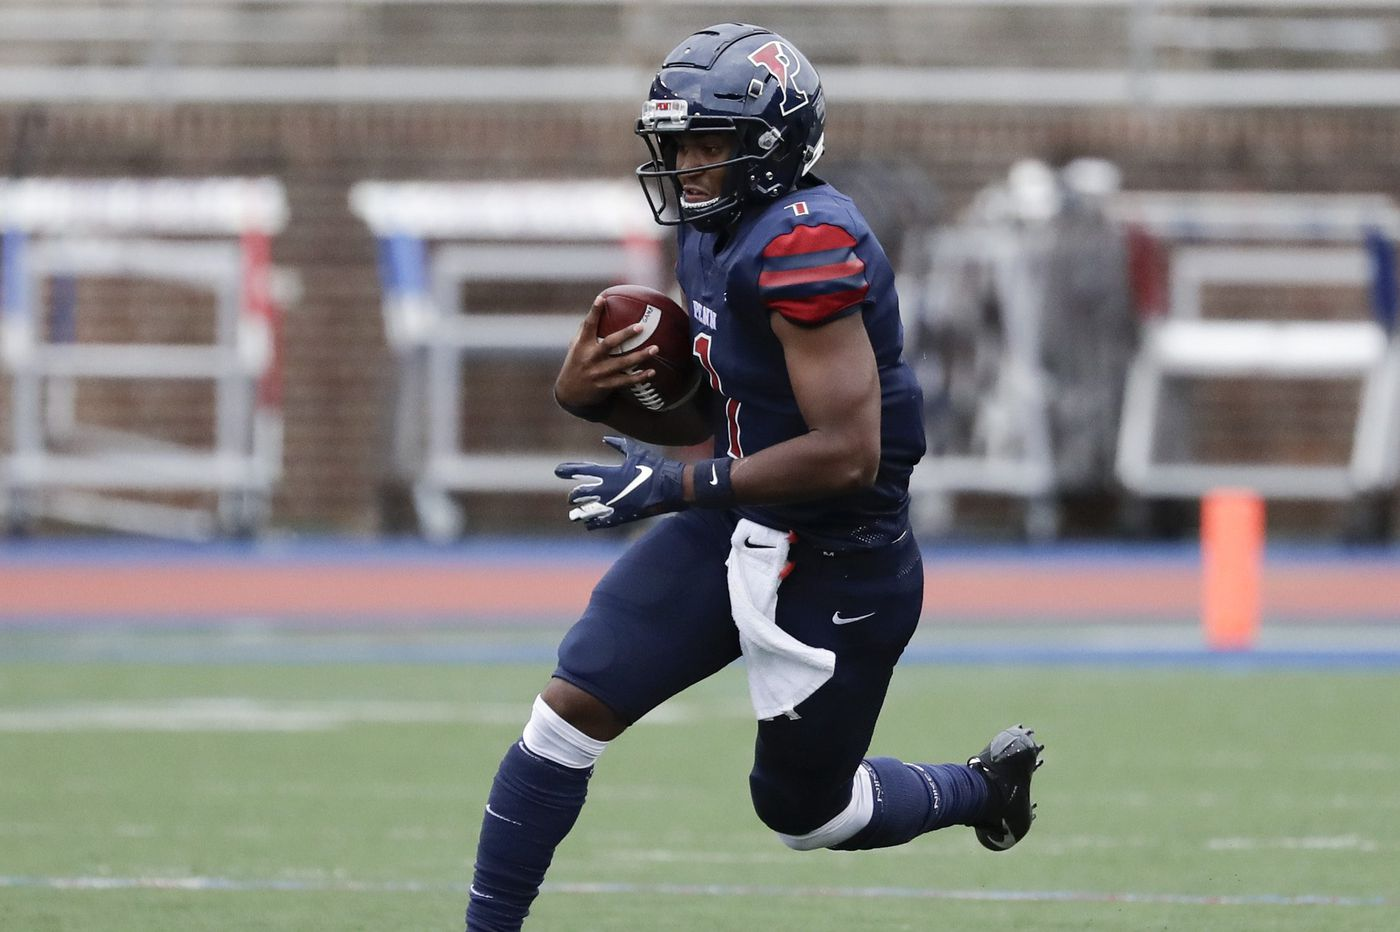 Ryan Glover leads Penn to comeback win over Sacred Heart, 31-27